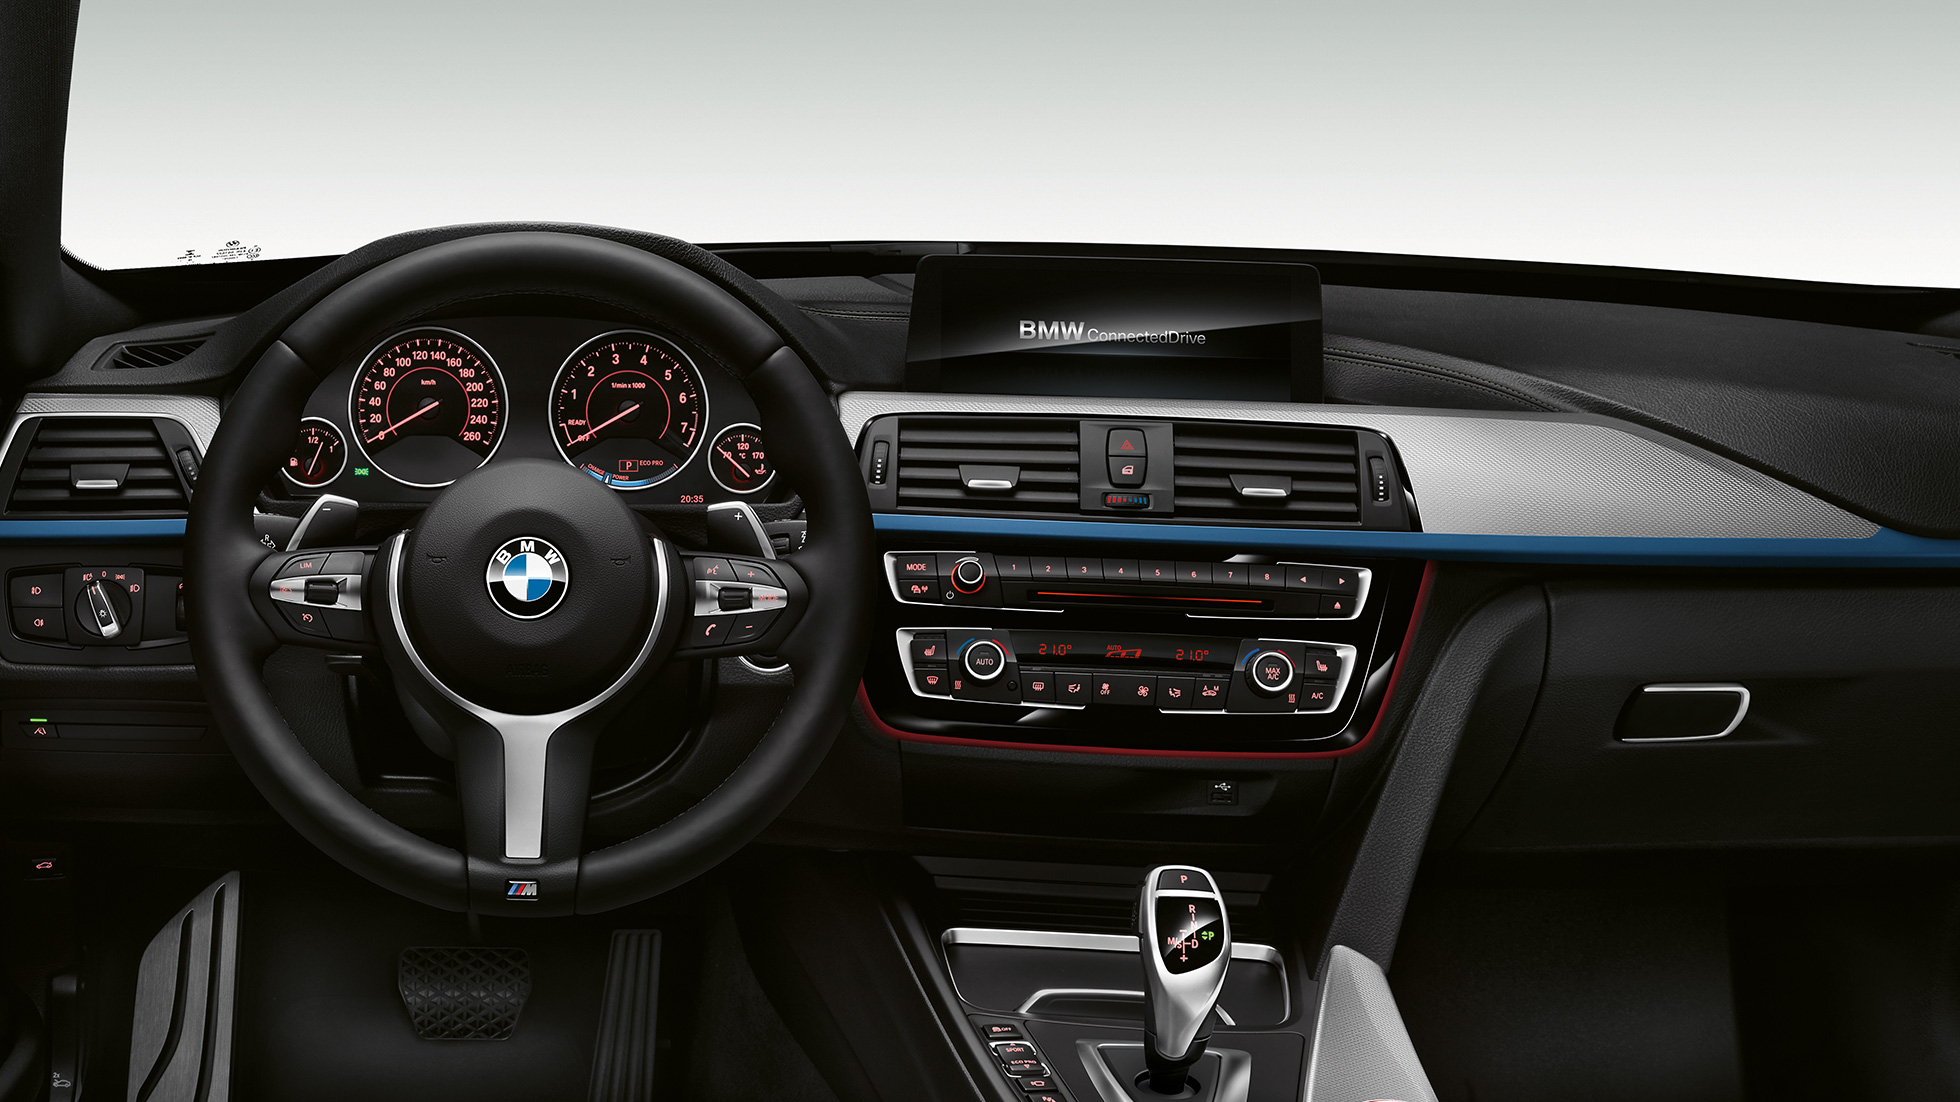 BMW 3 Series Gran Turismo, Model M Sport cockpit